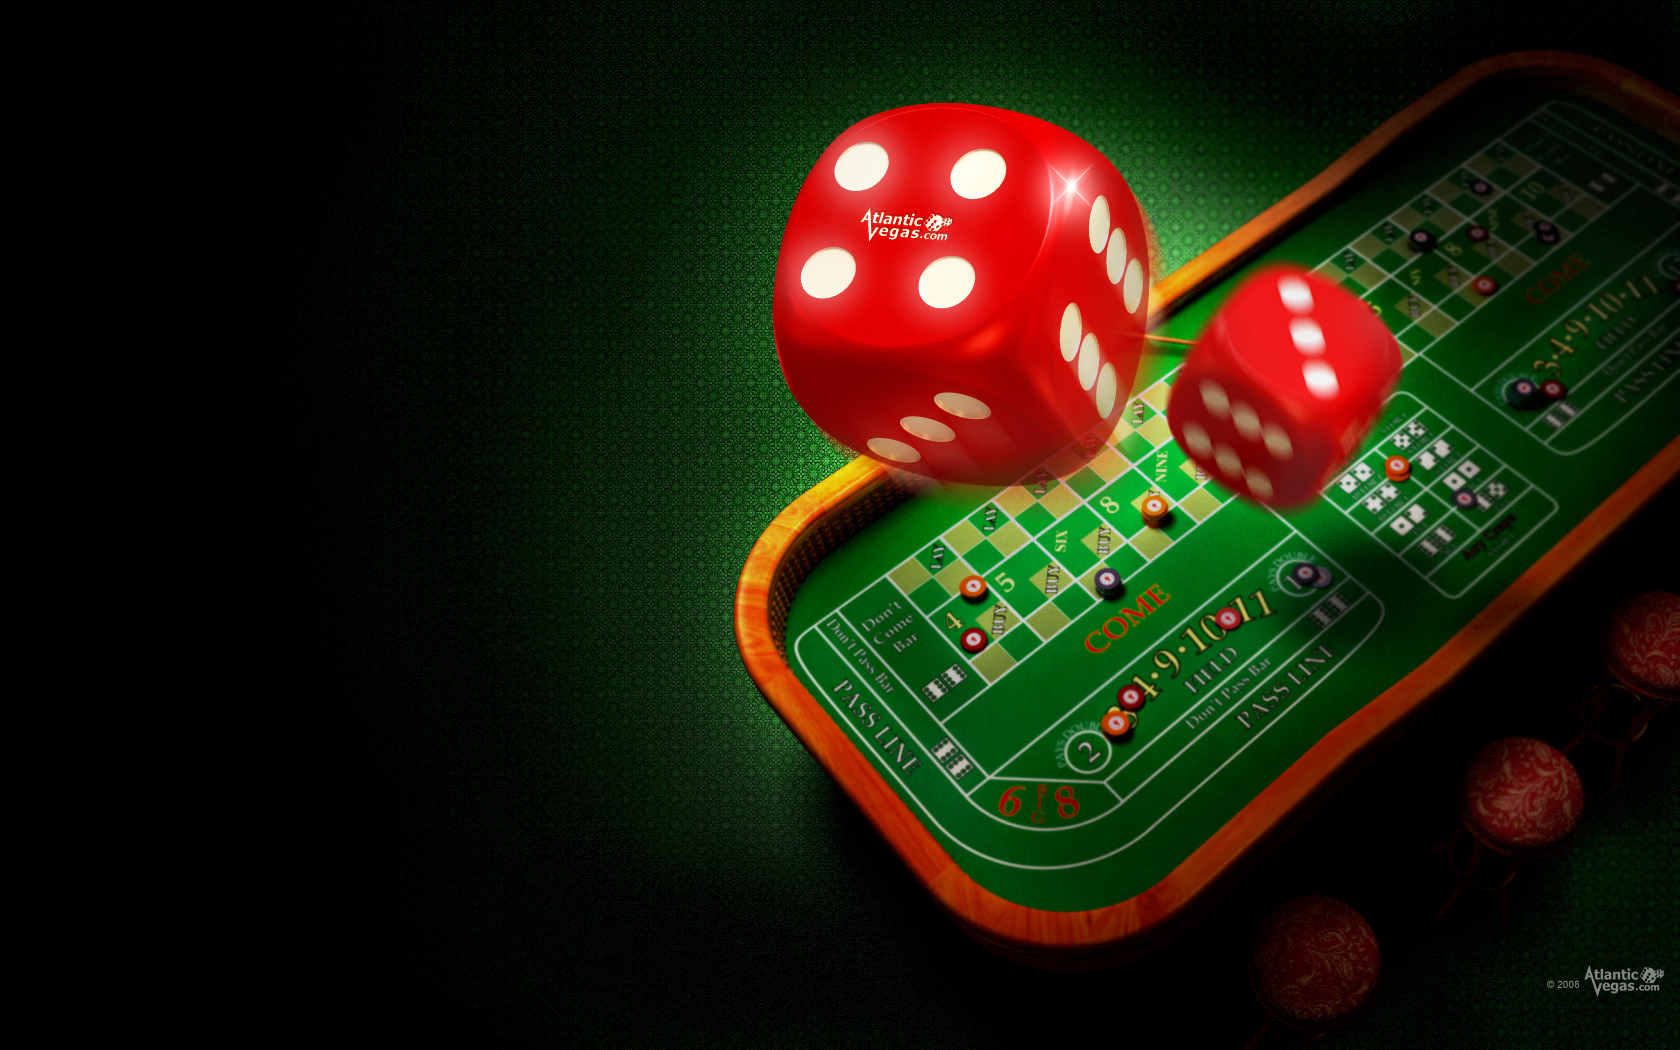 best wallpaper poker wallpaper dice wallpaper roulette wallpaper best 1680x1050